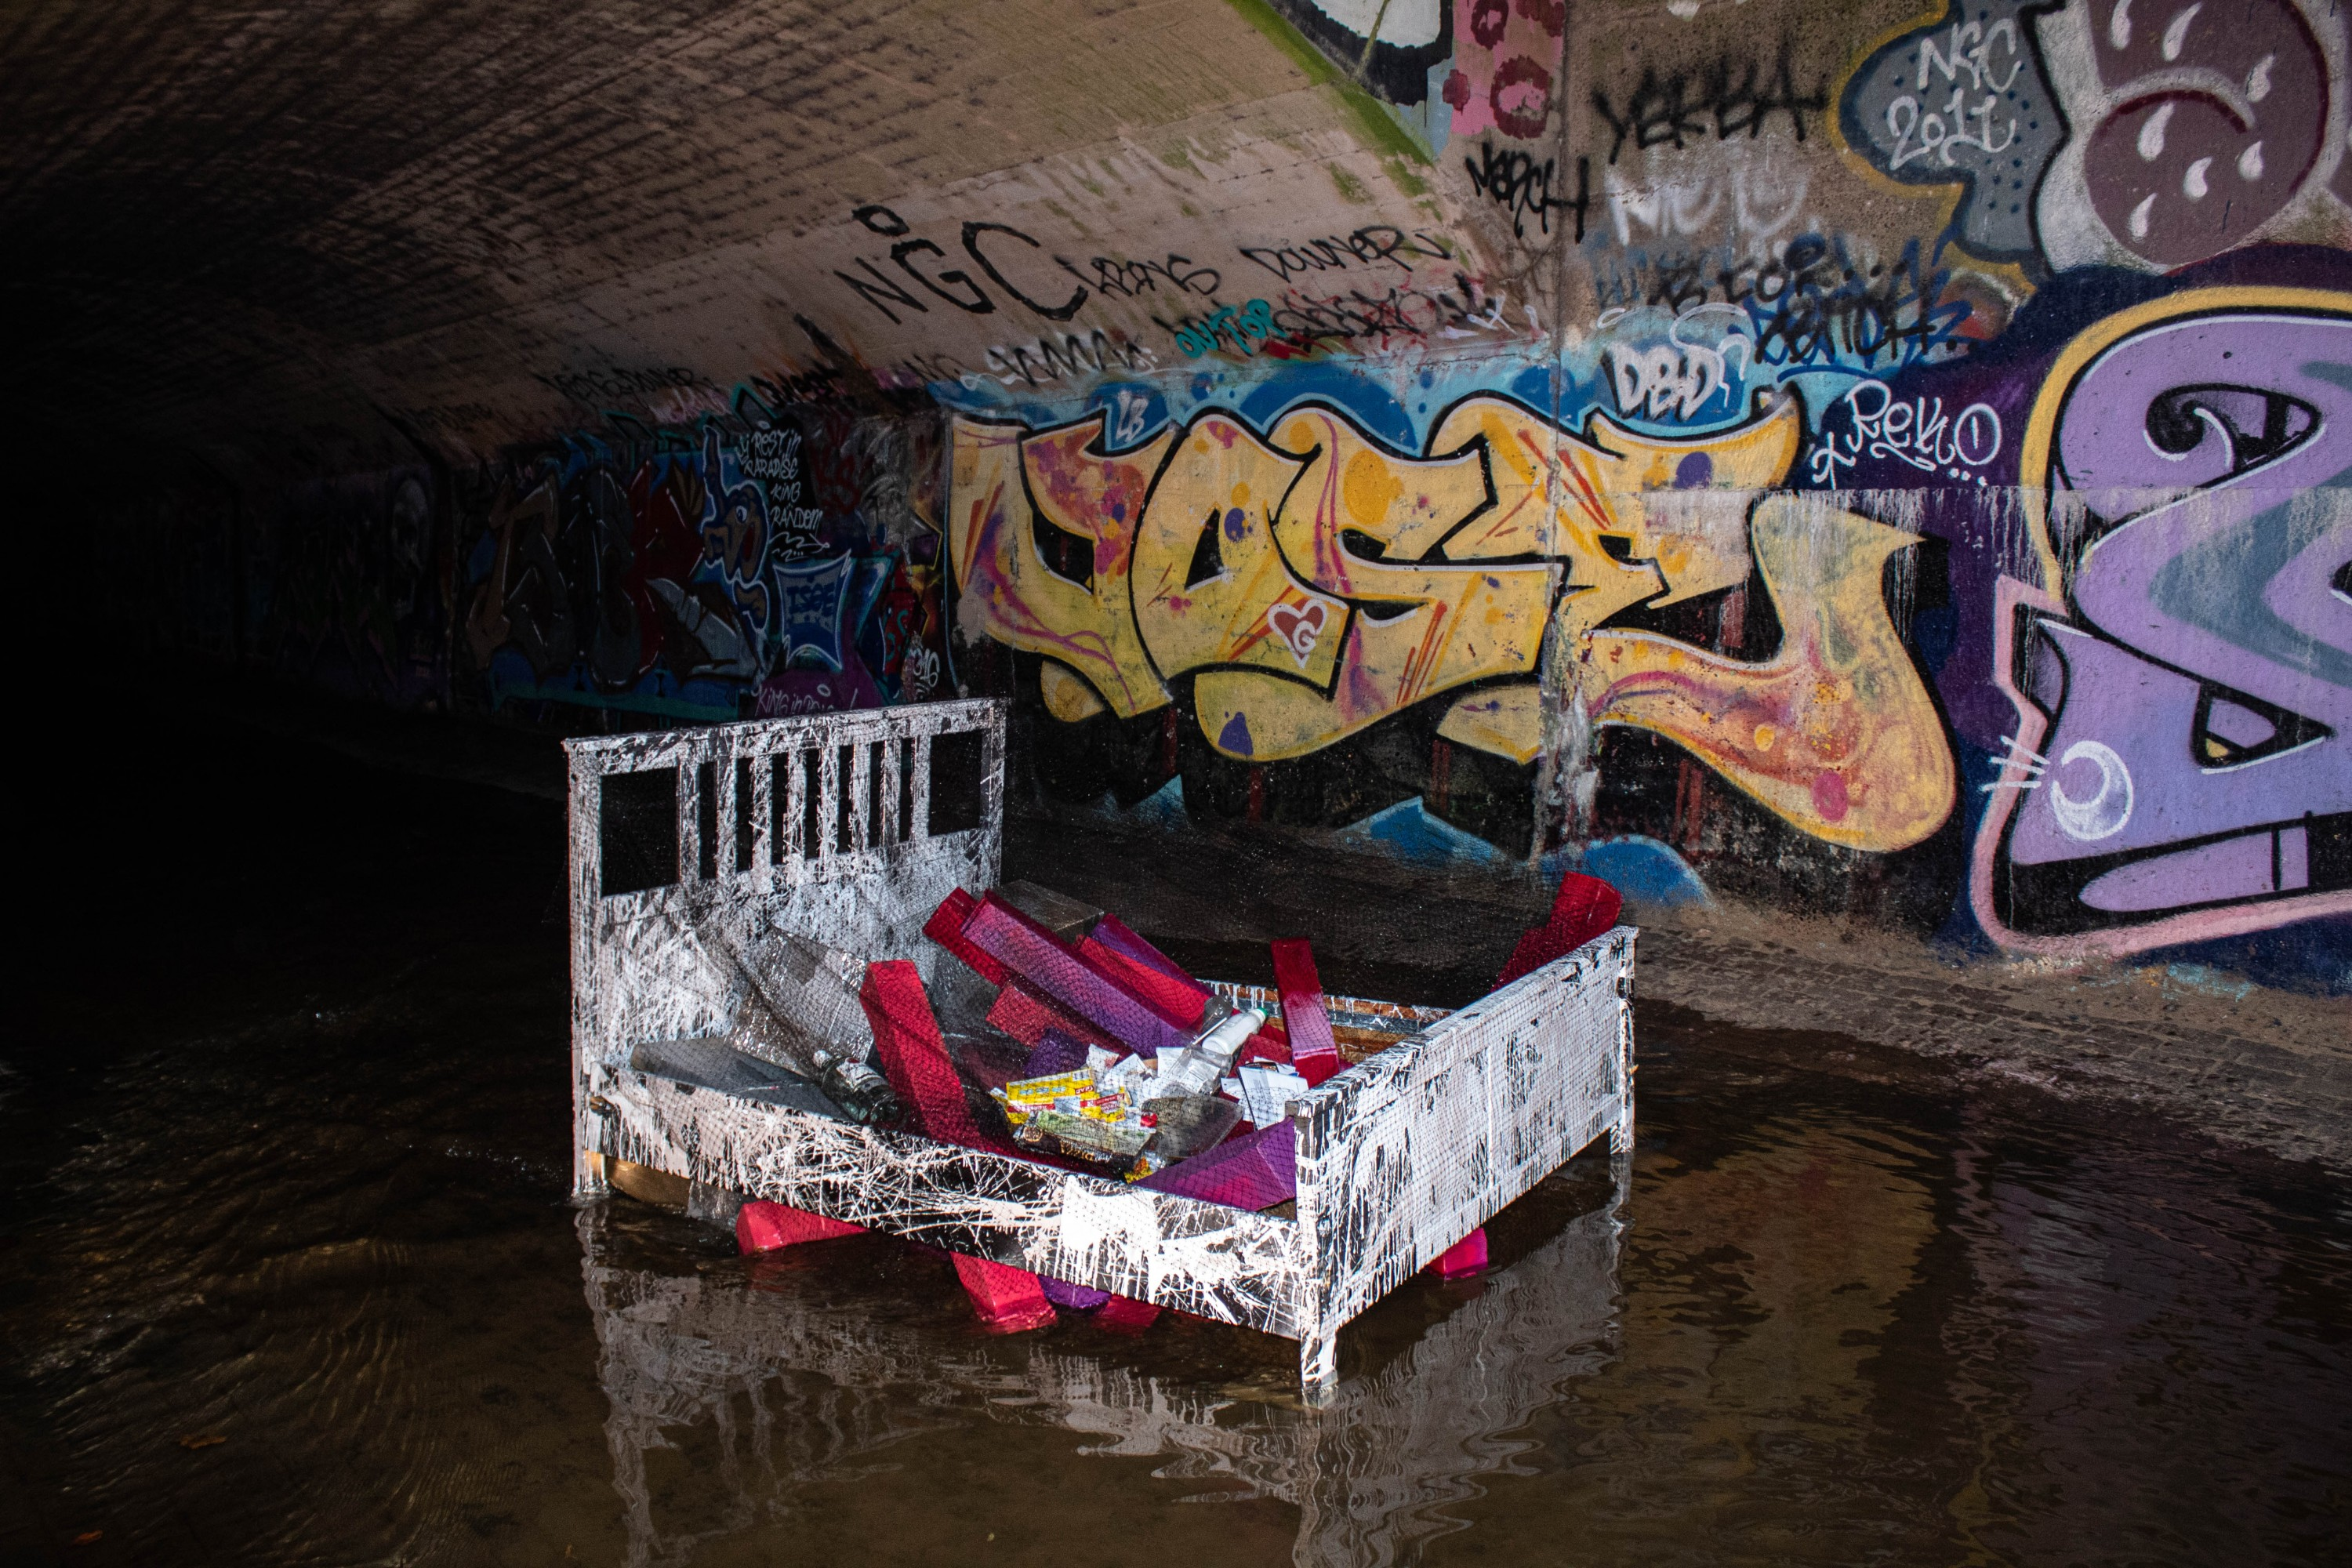 Painted bed frame and boxes topped with trash from the artist's consumption which is lackadaisically corralled with plastic netting reminiscent of a large fish net. Installation lived in Jones Falls stream tunnel laced in graffiti.